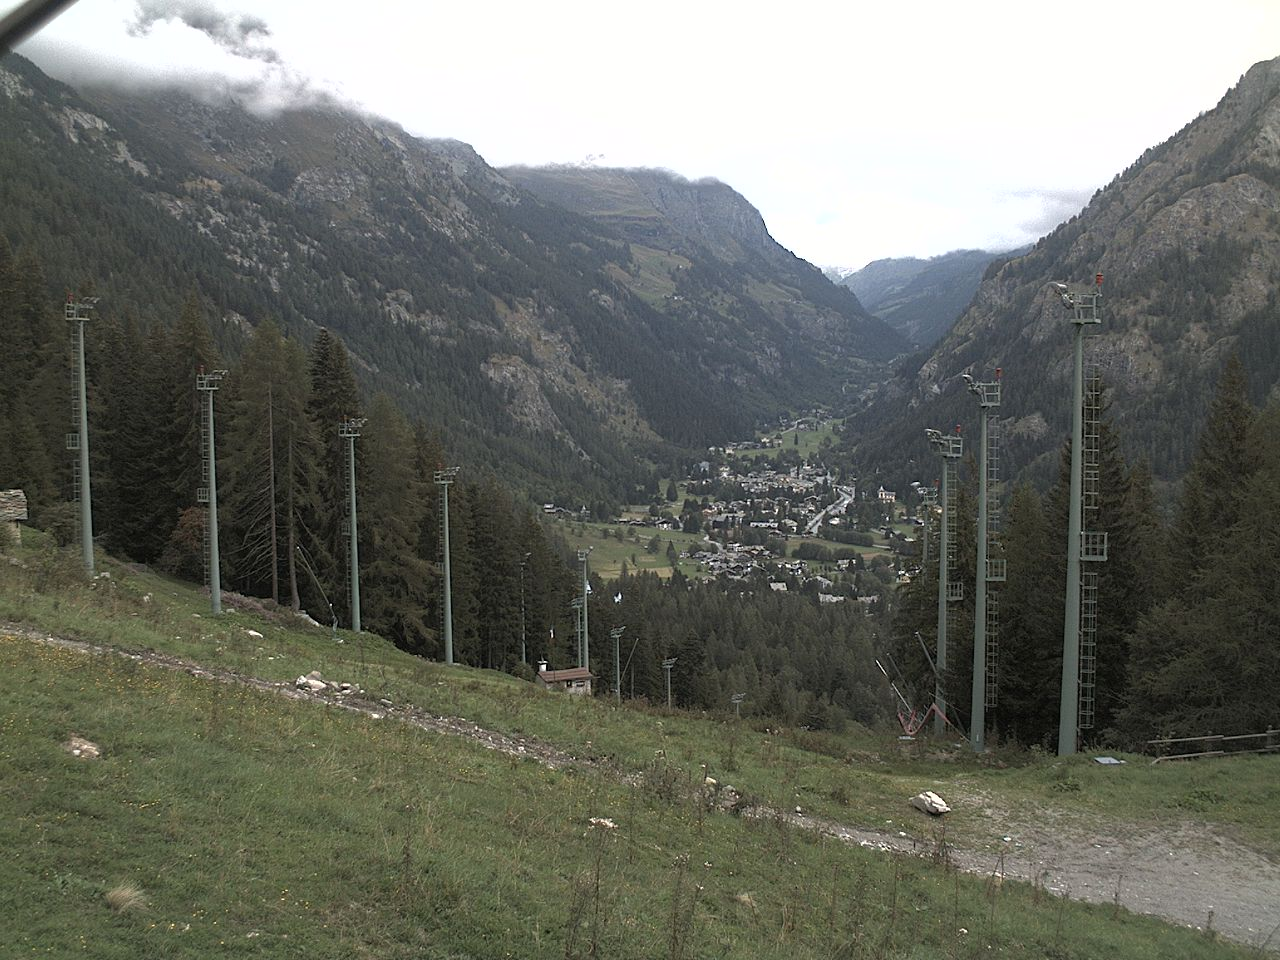 Gressoney Saint Jean webcam - Clicca per ingrandire